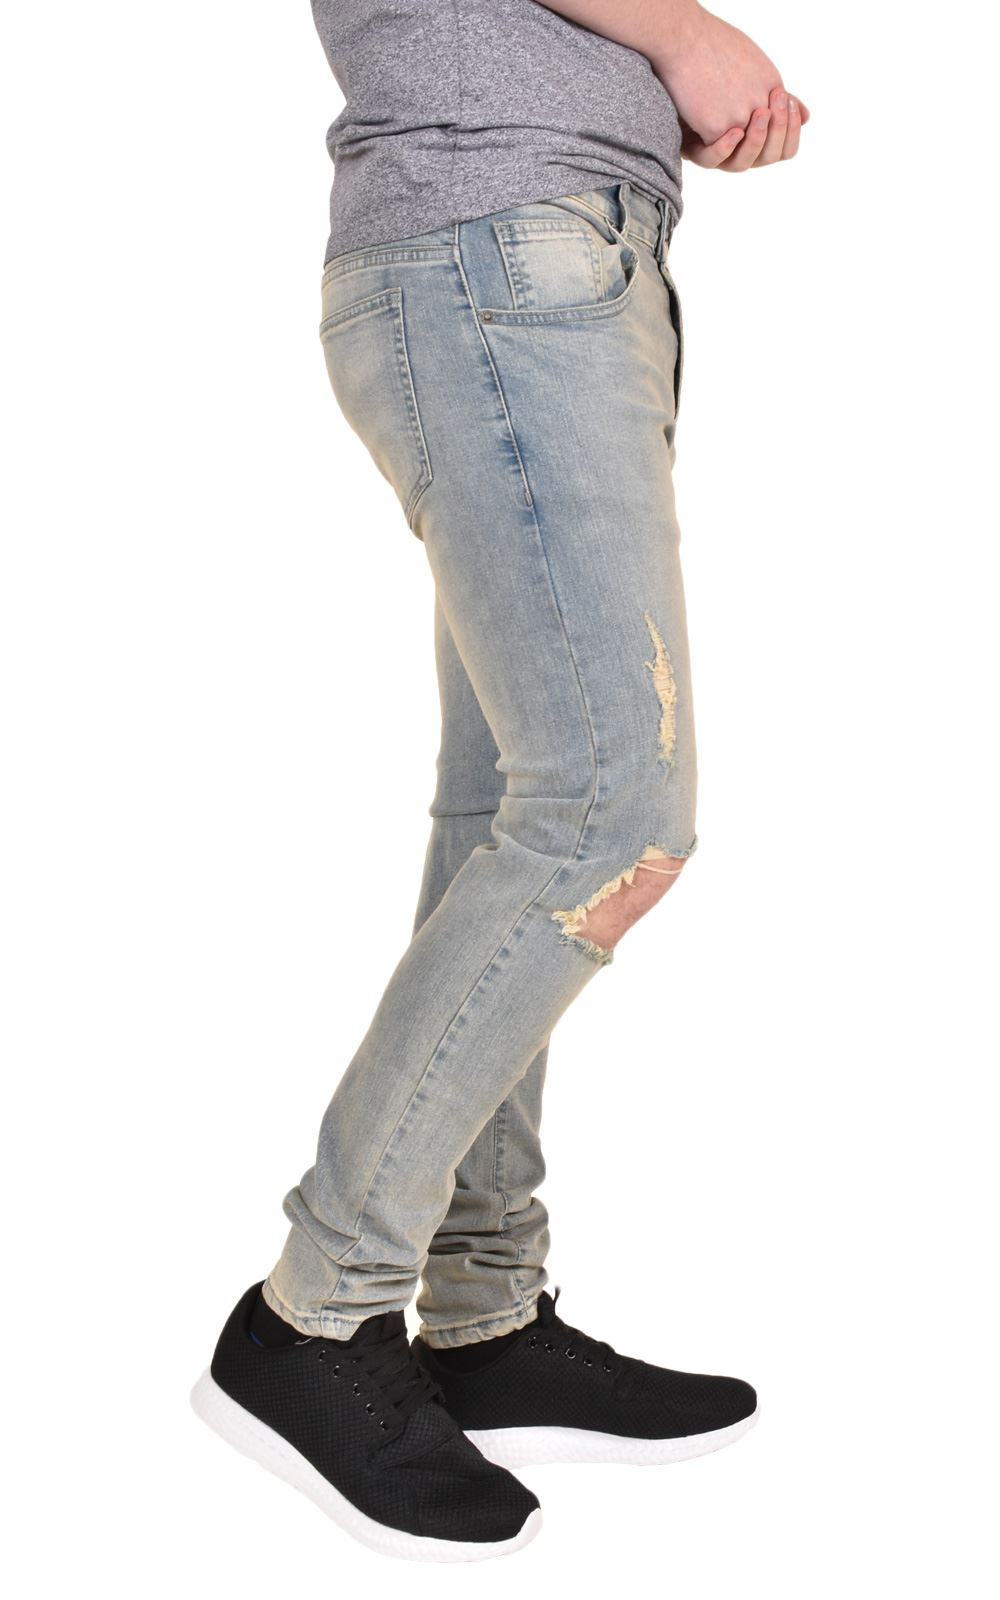 Mens-Ripped-Jeans-Skinny-Slim-Fit-Stretch-Distressed-Denim-Pants-Trousers-28-40 thumbnail 11